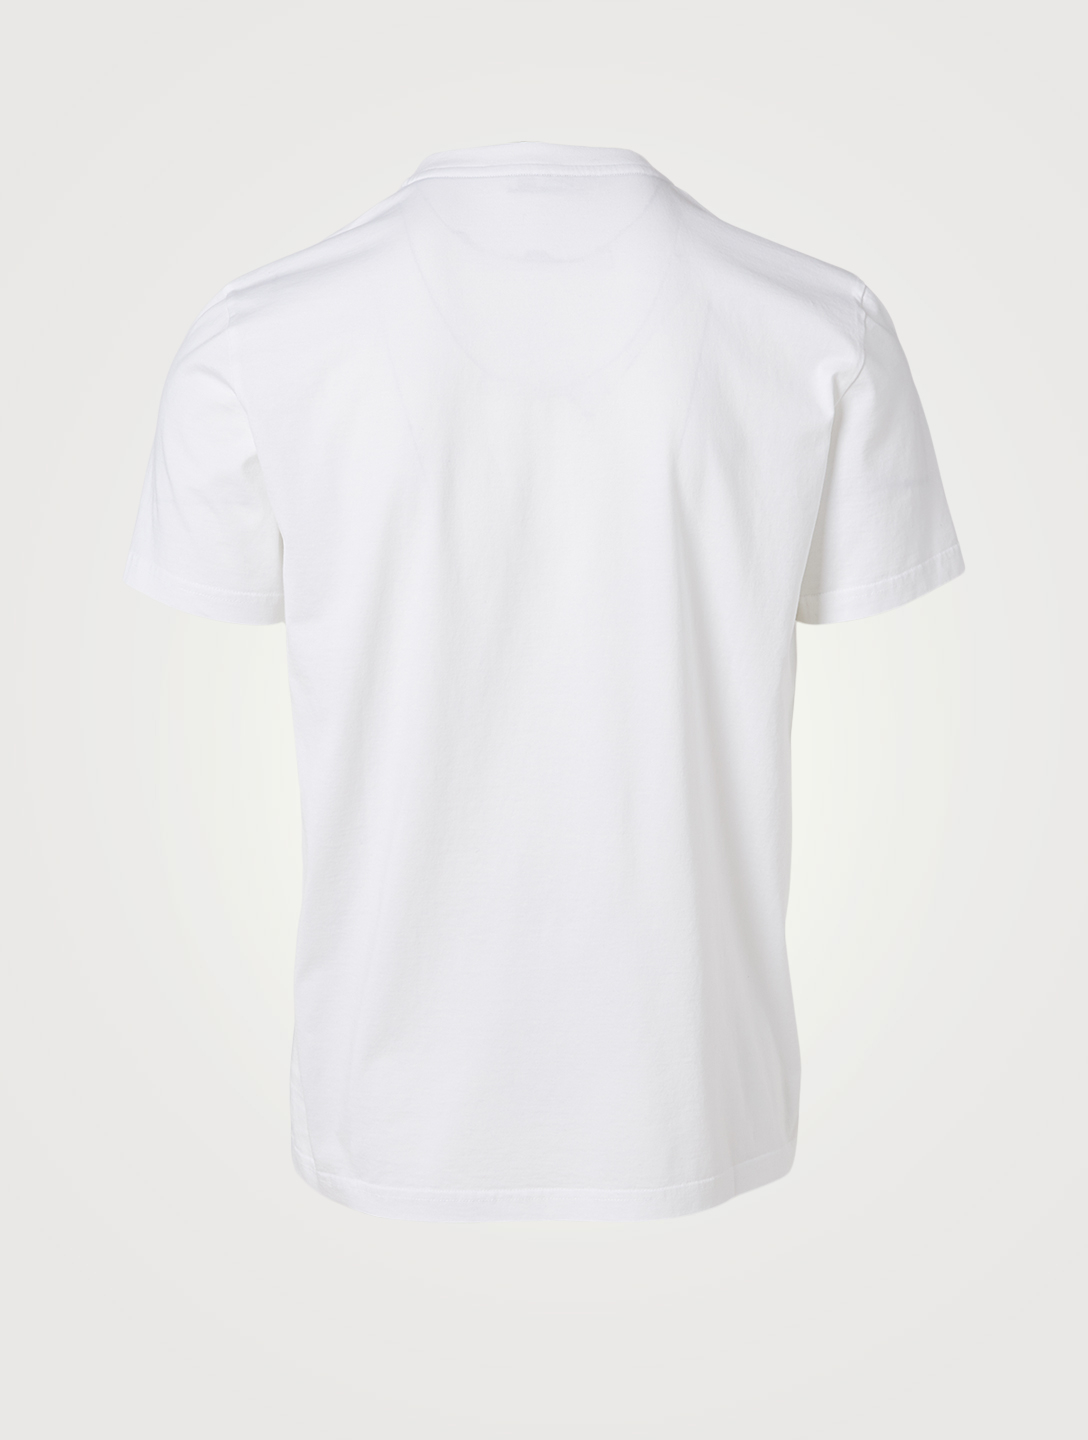 GIVENCHY Cotton Slim T-Shirt With Vintage Logo Men's White